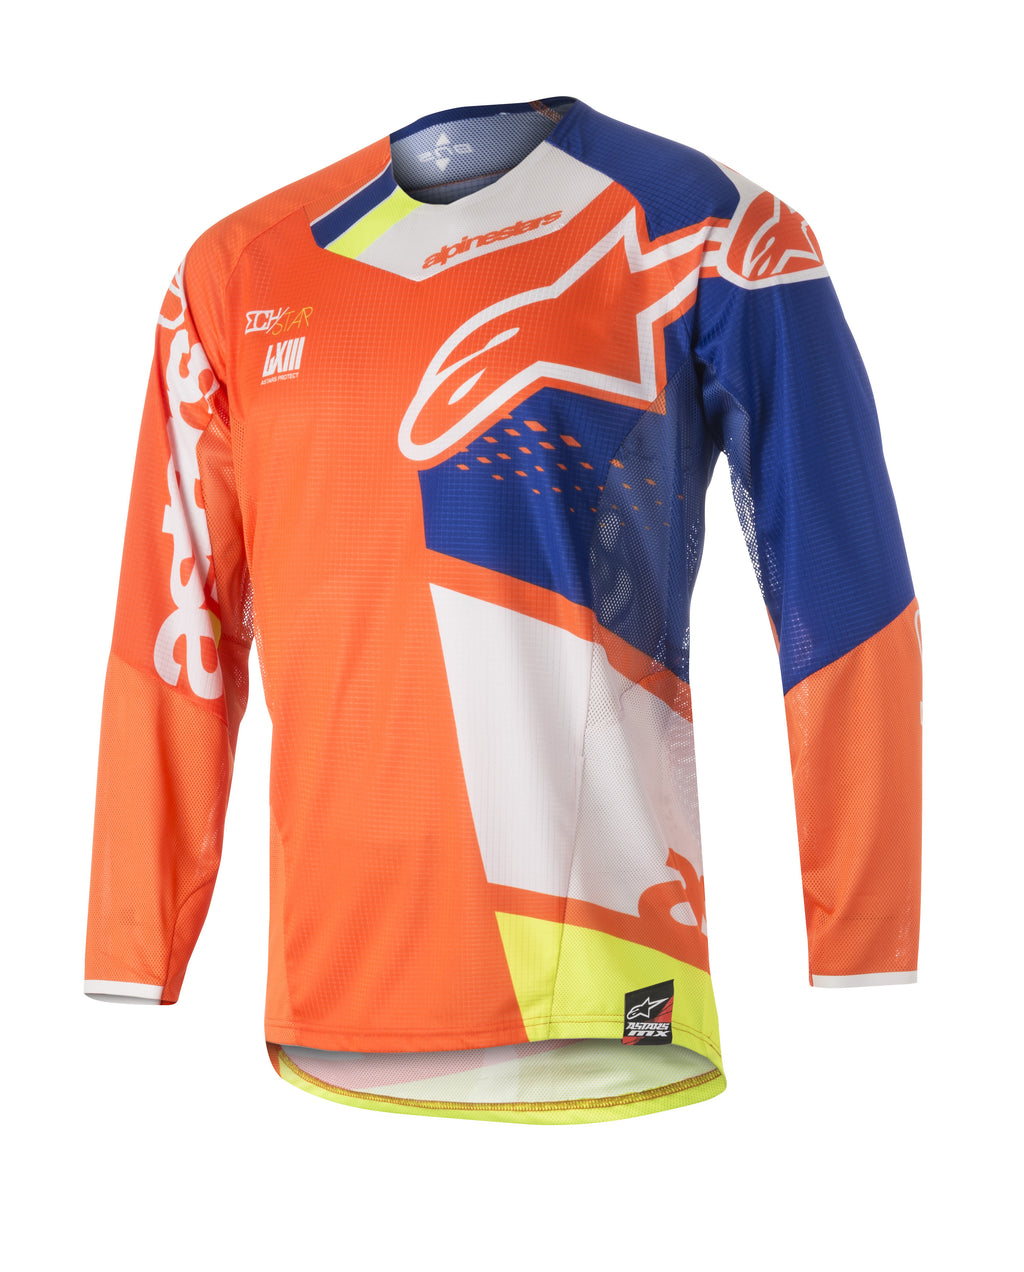 Kit Jersey Alpinestars Techstar Factory - 2018- Orange Blue White S - Small